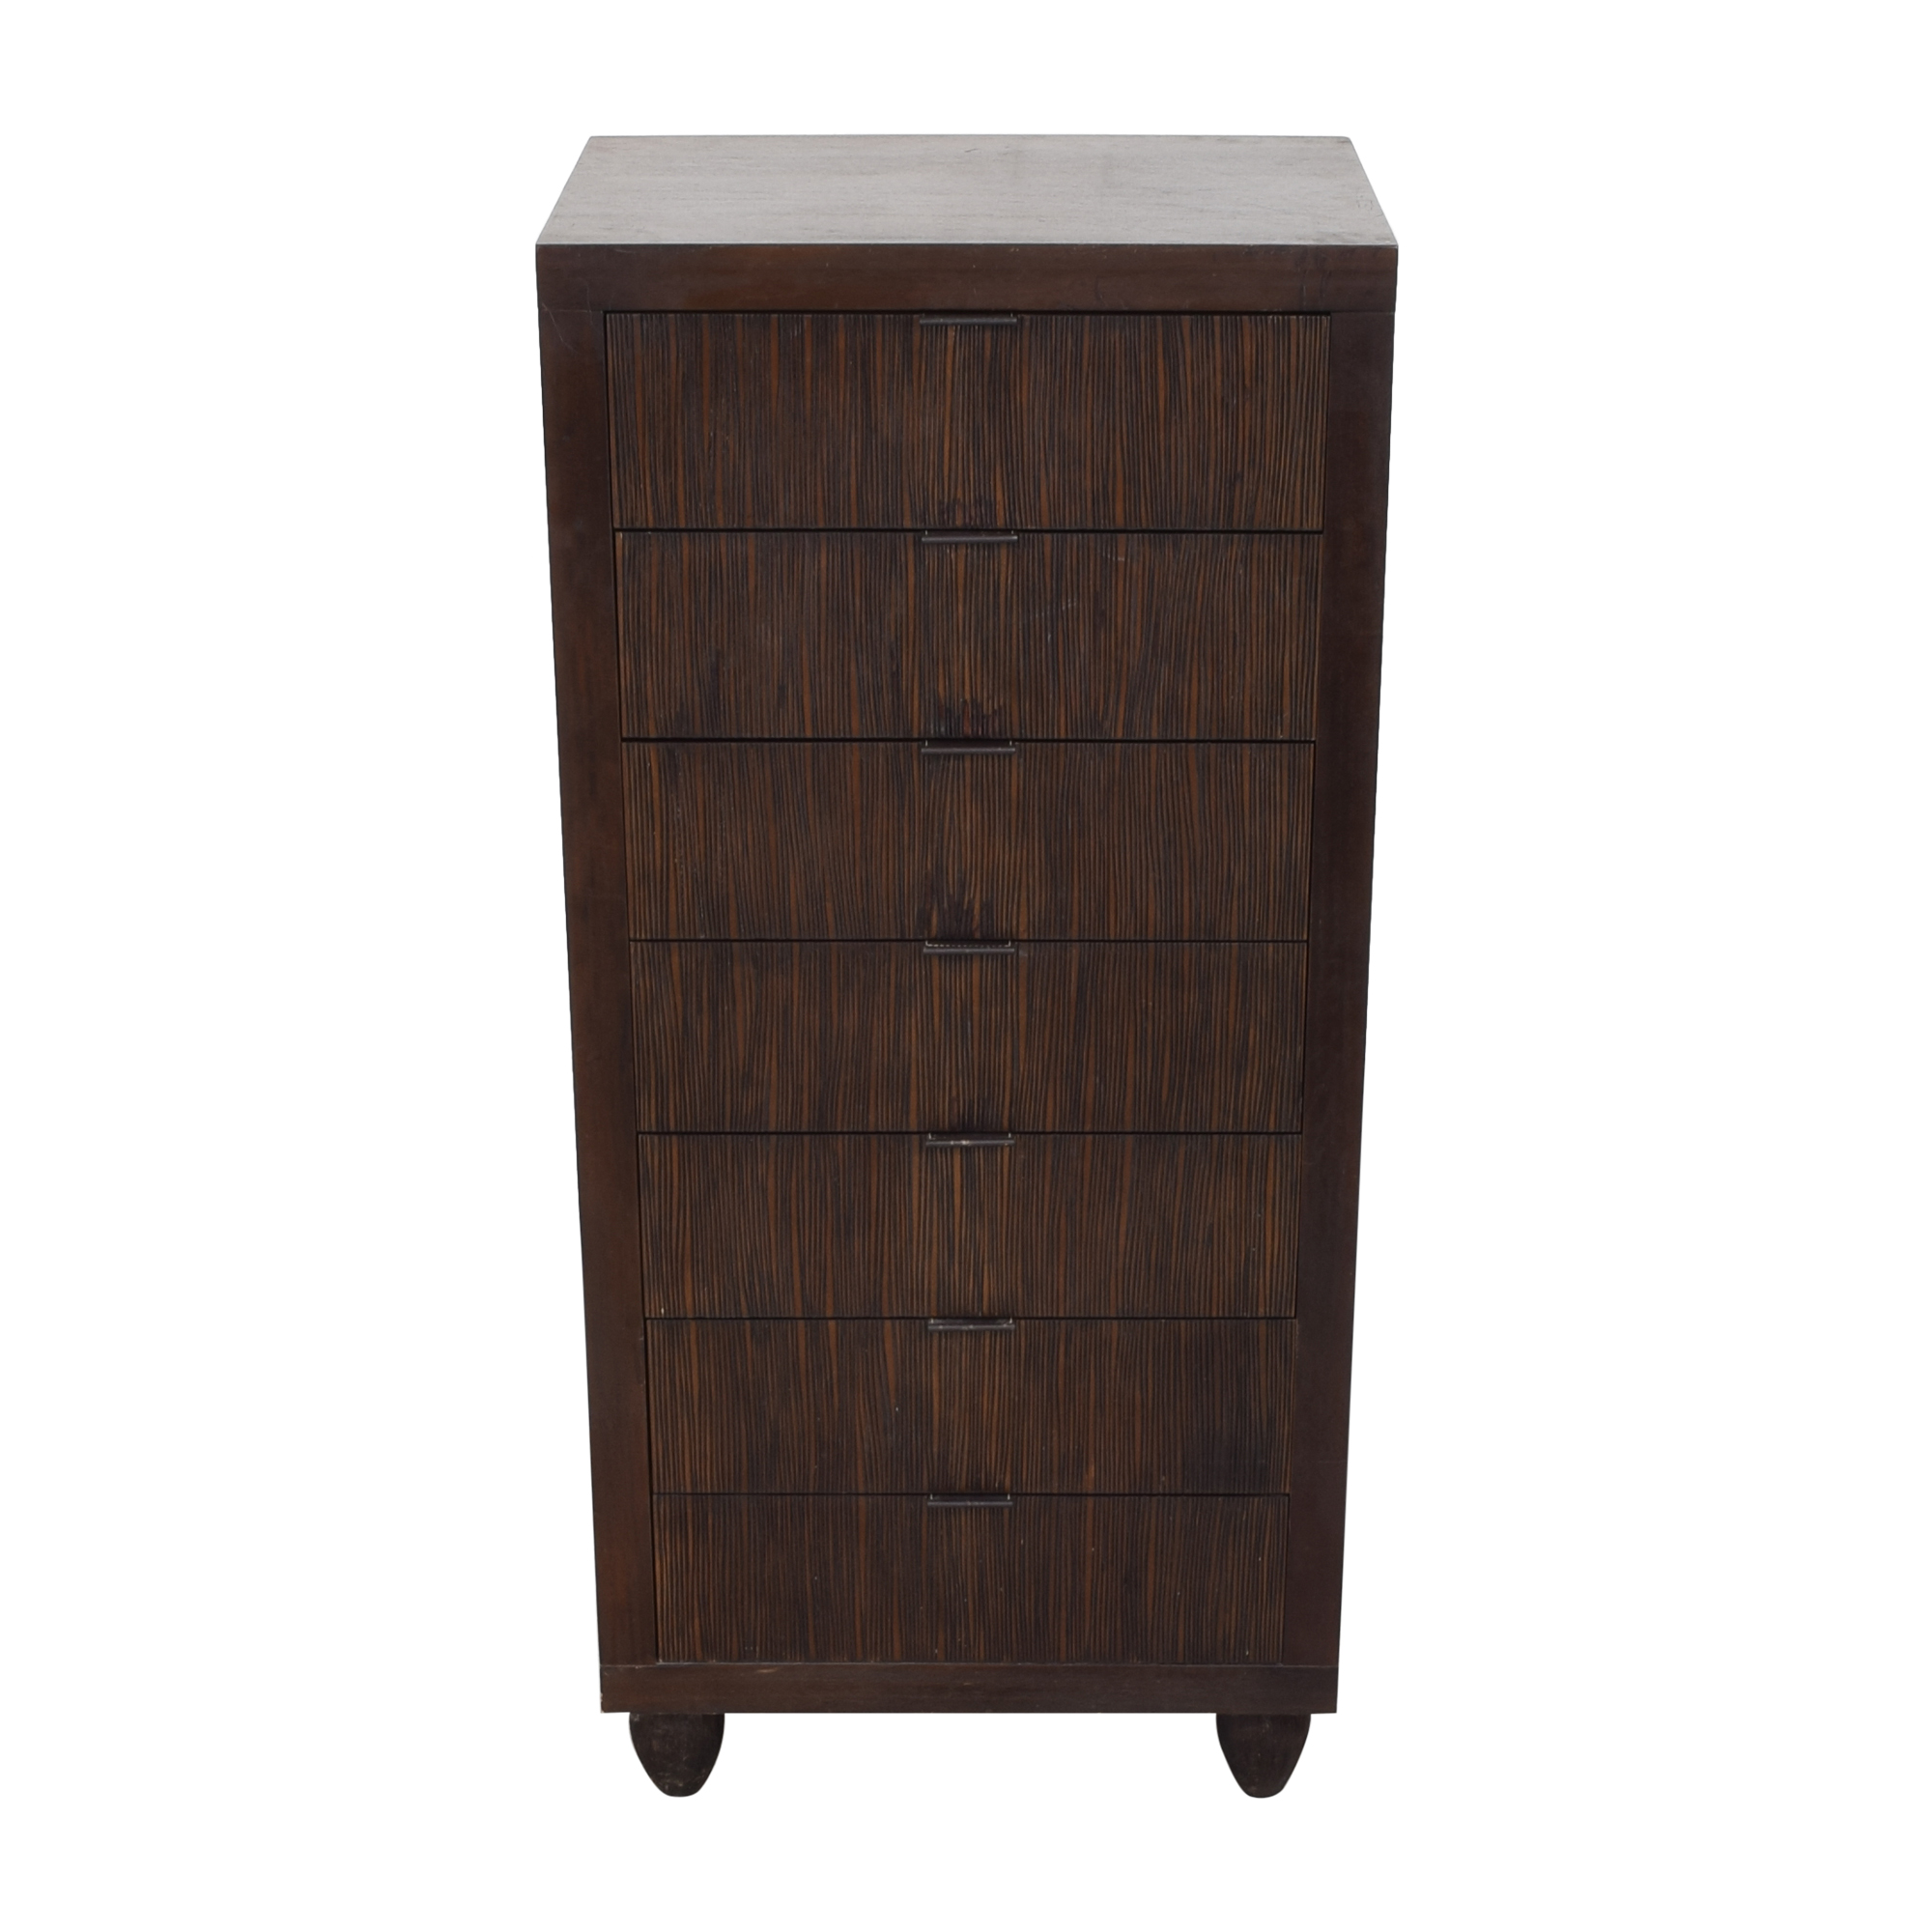 Crate & Barrel Crate & Barrel Tall Chest of Drawers second hand